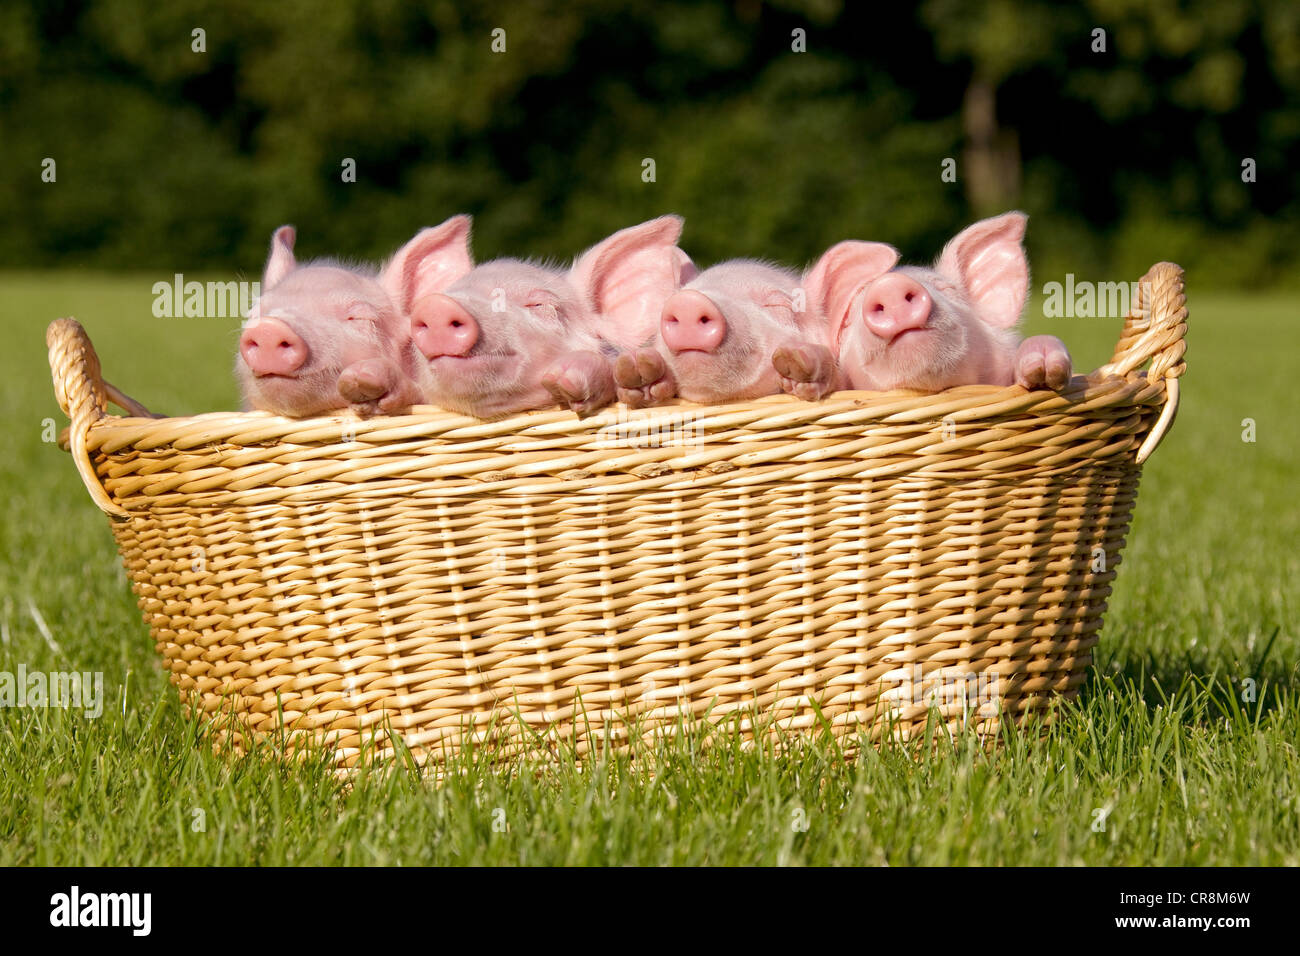 Four piglets in basket - Stock Image